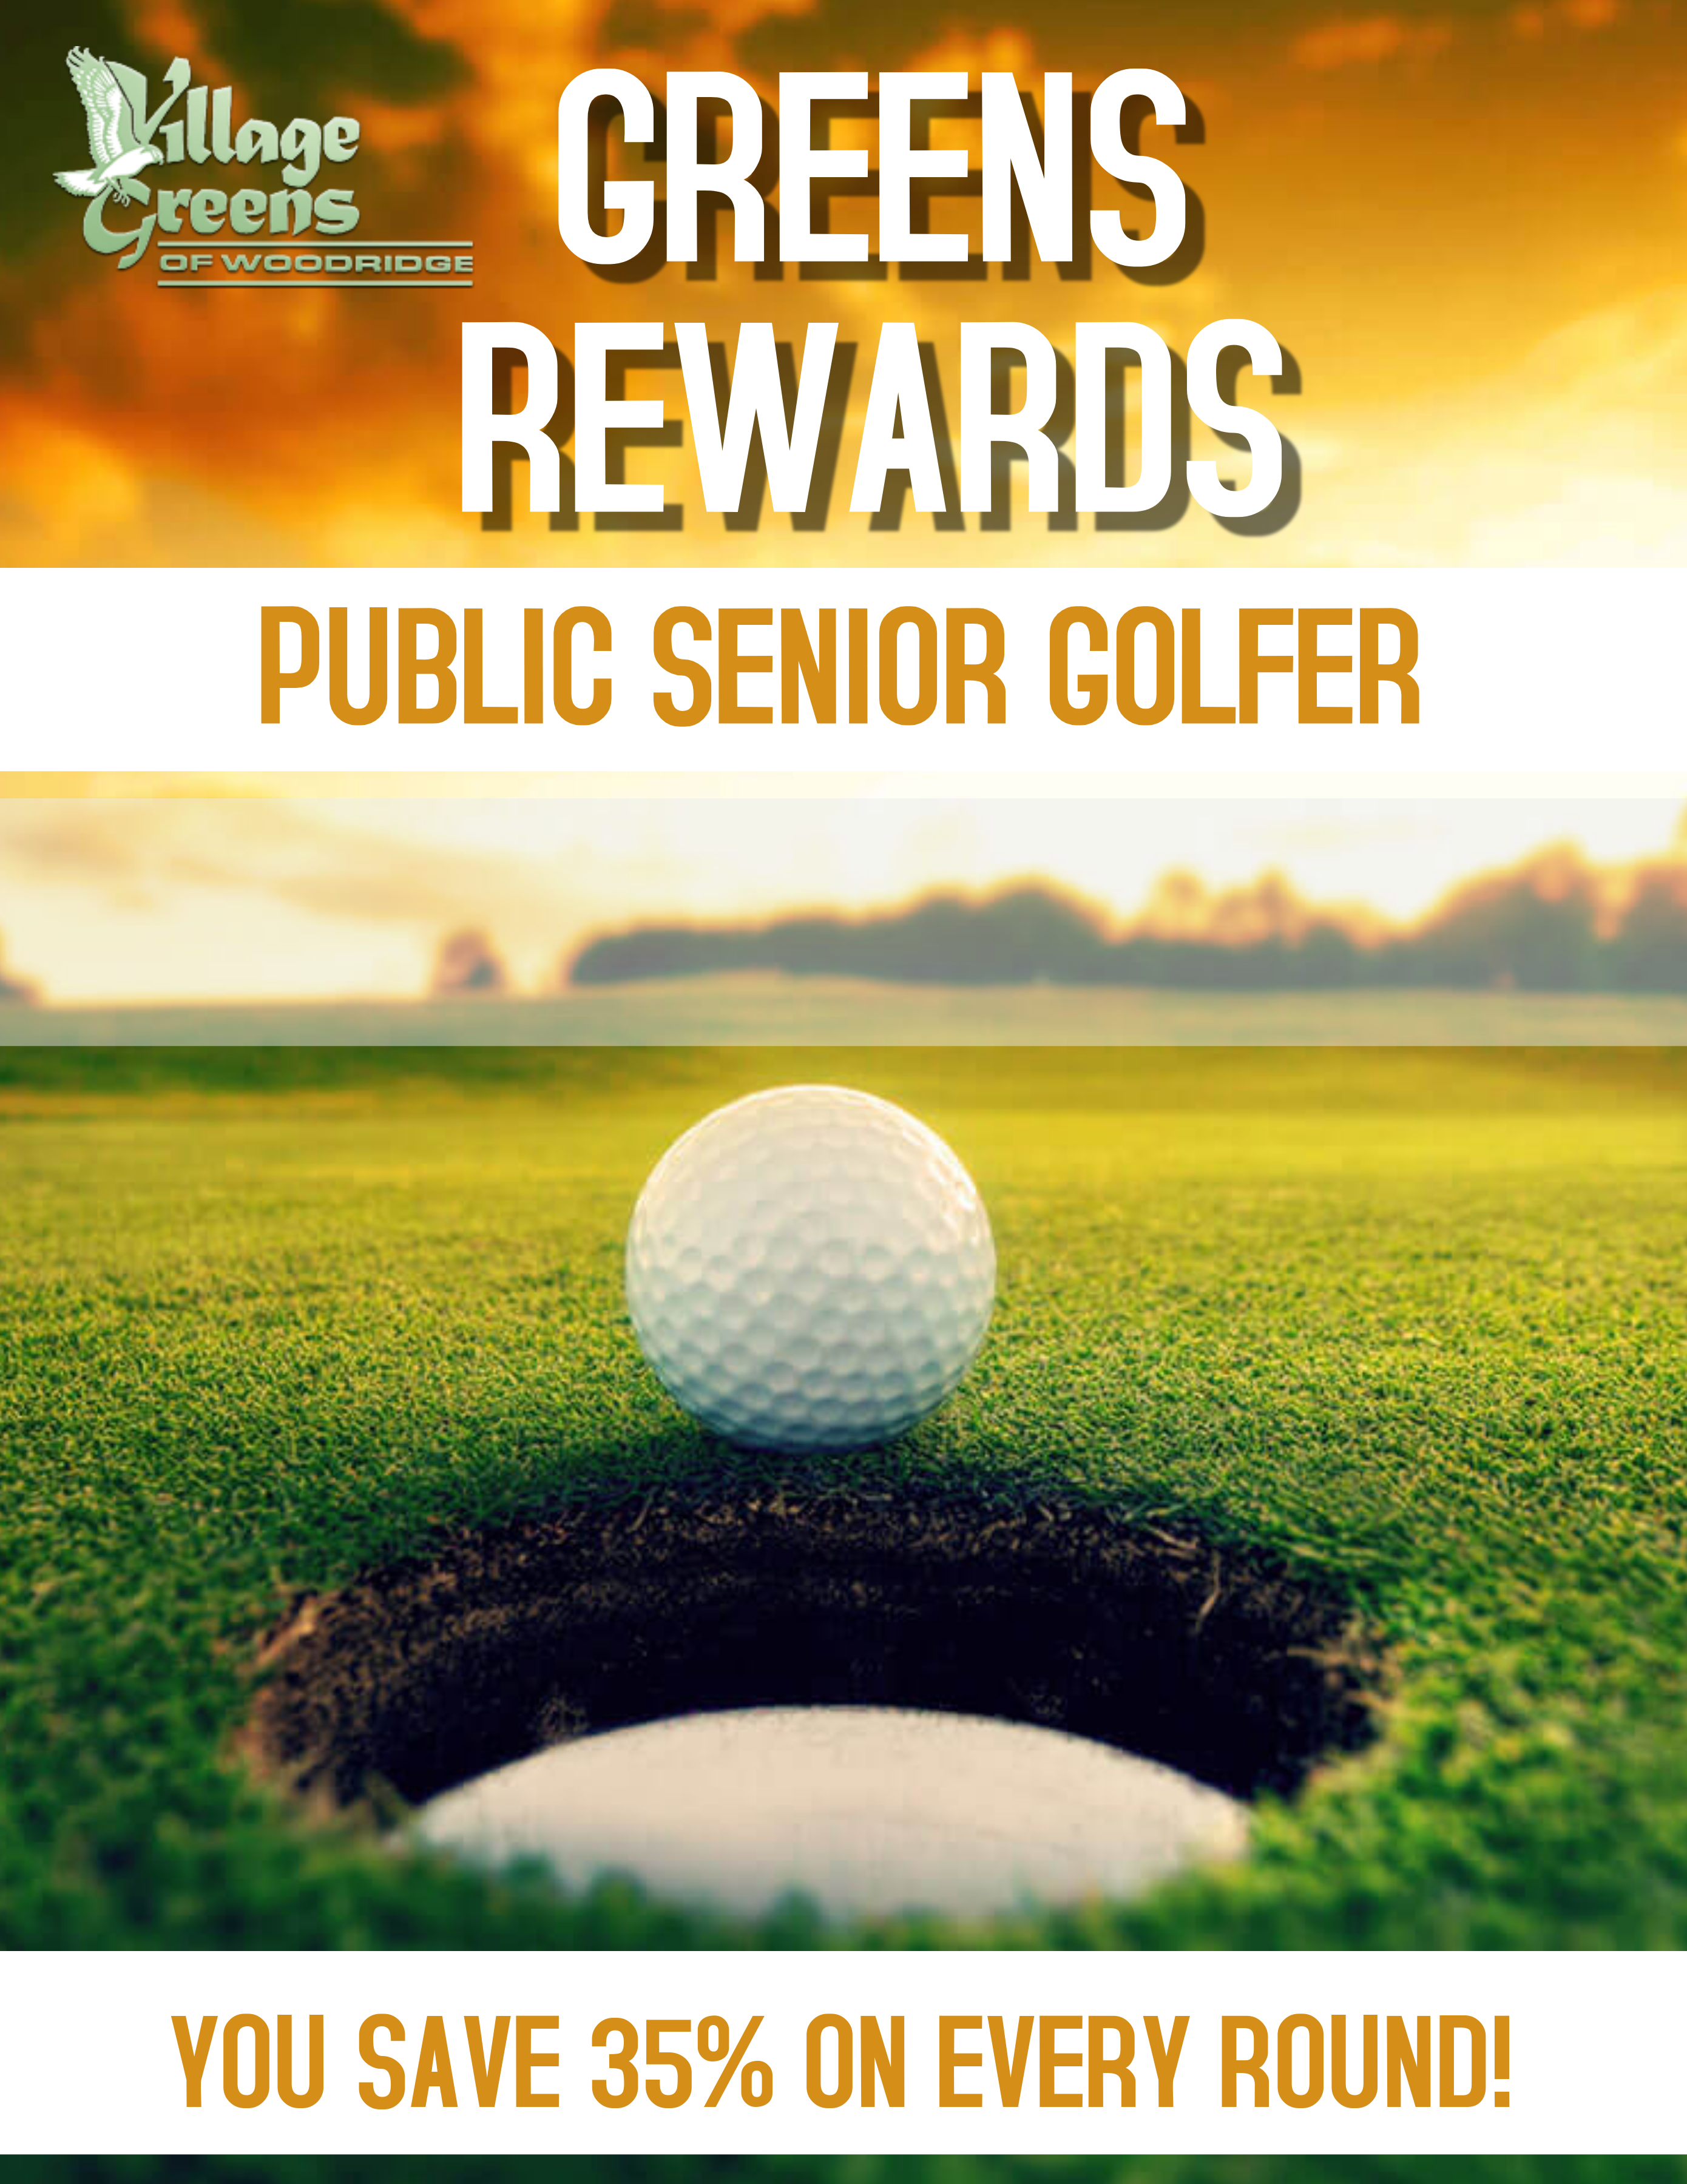 Greens Rewards Public Senior